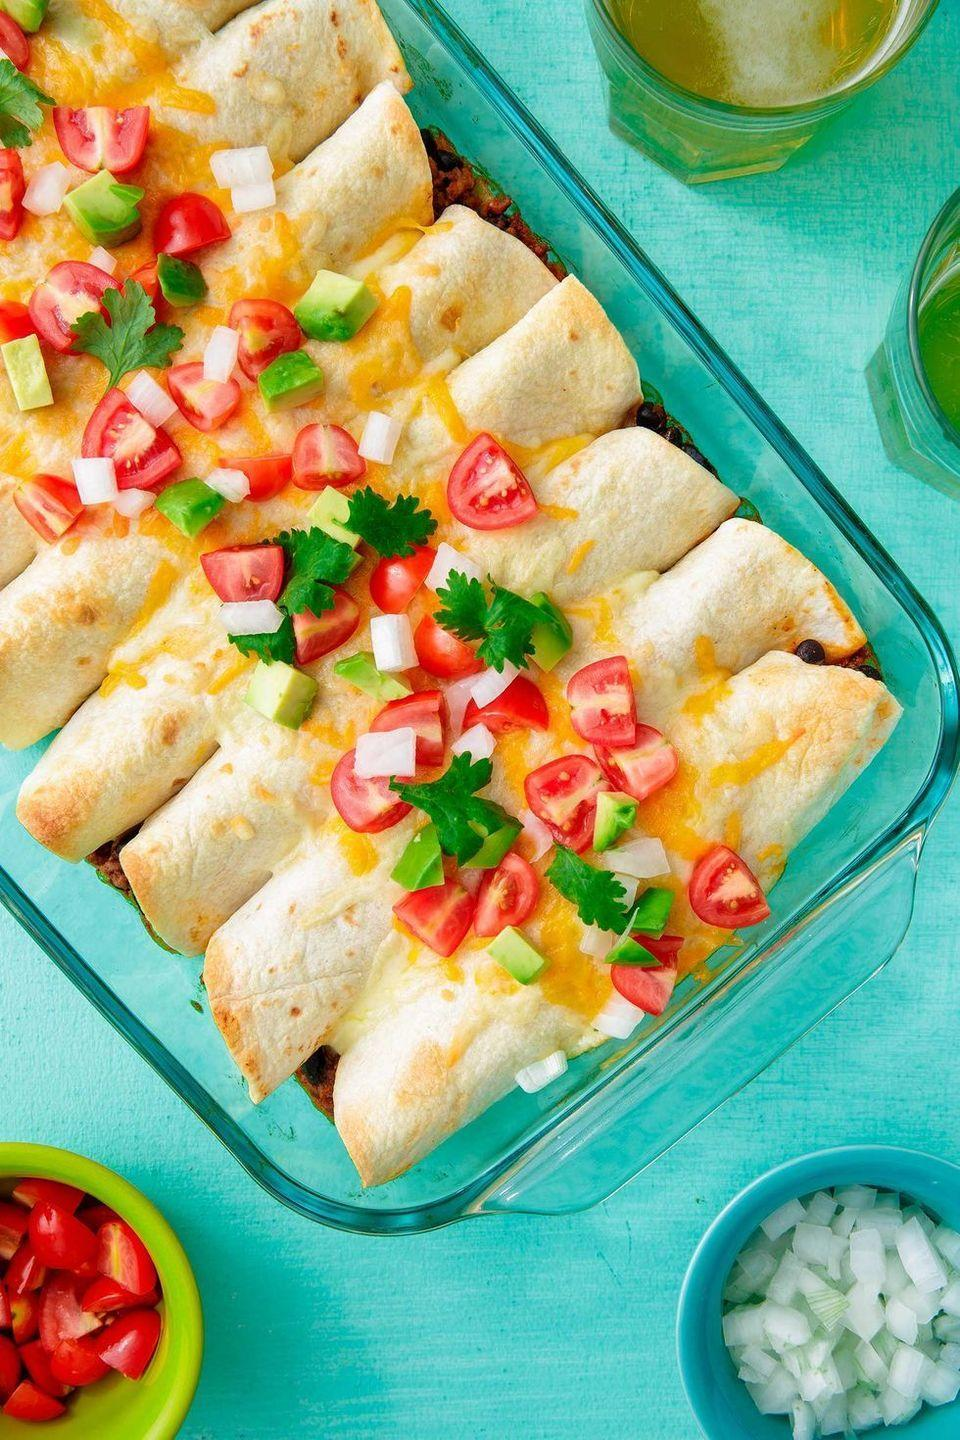 """<p>Like your enchiladas with a kick? Finely crush two jalapeños and sauté them with the onions for a little added heat.</p><p>Get the <a href=""""https://www.delish.com/uk/cooking/recipes/a31202002/beef-enchiladas-recipe/"""" rel=""""nofollow noopener"""" target=""""_blank"""" data-ylk=""""slk:Beef Enchiladas"""" class=""""link rapid-noclick-resp"""">Beef Enchiladas</a> recipe.</p>"""